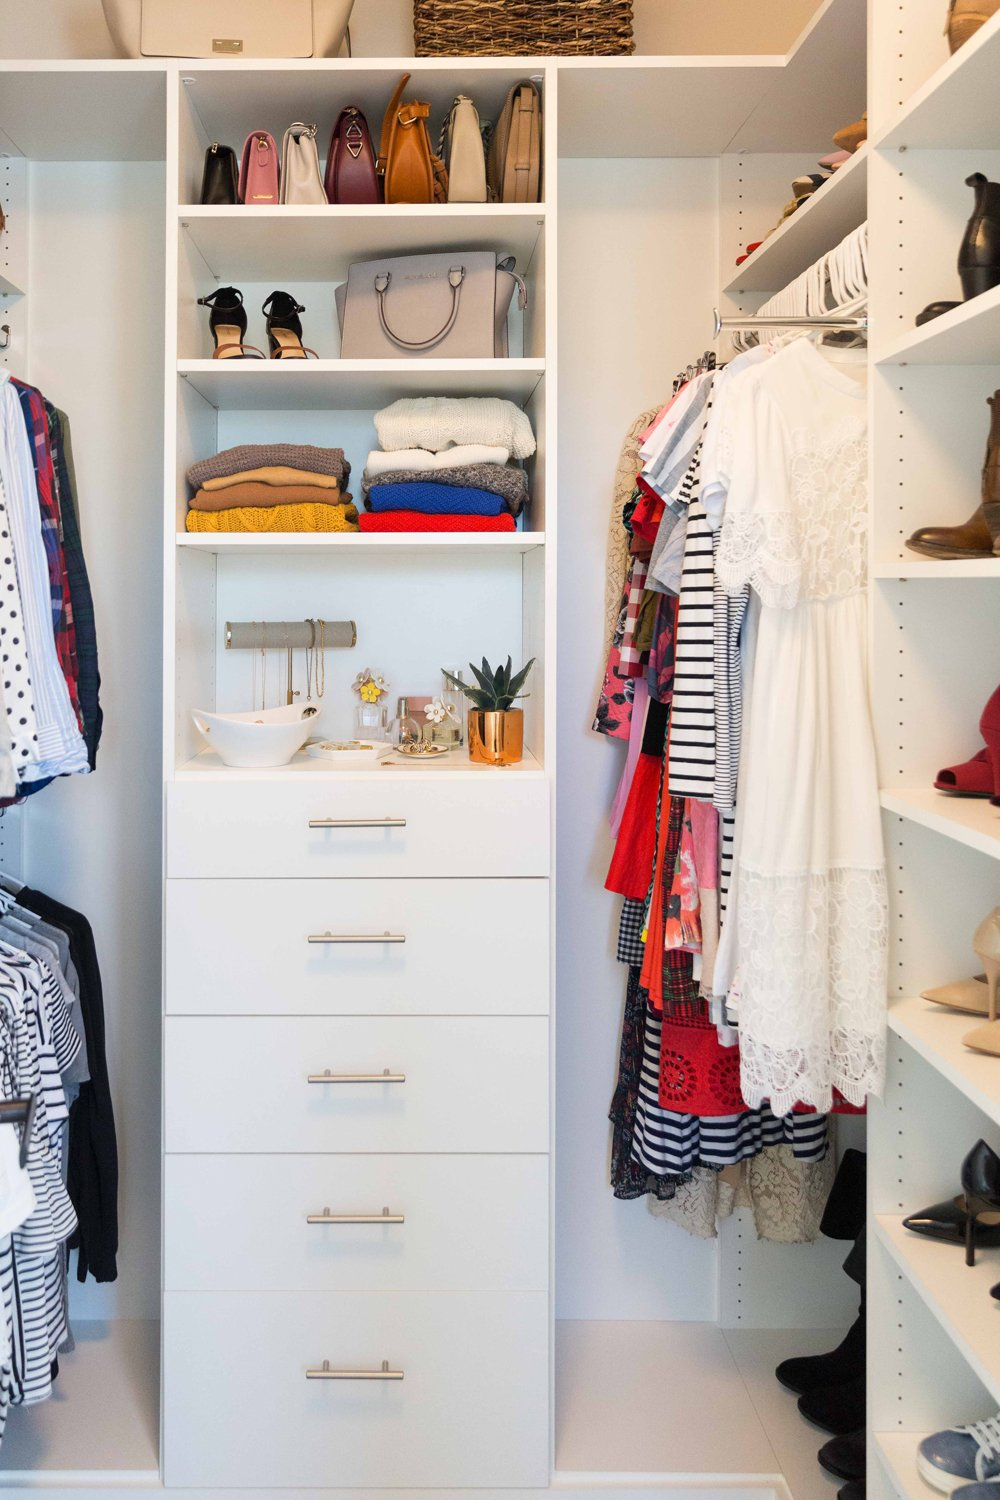 My Closet Reveal + 6 Ways To Maximize Closet Space